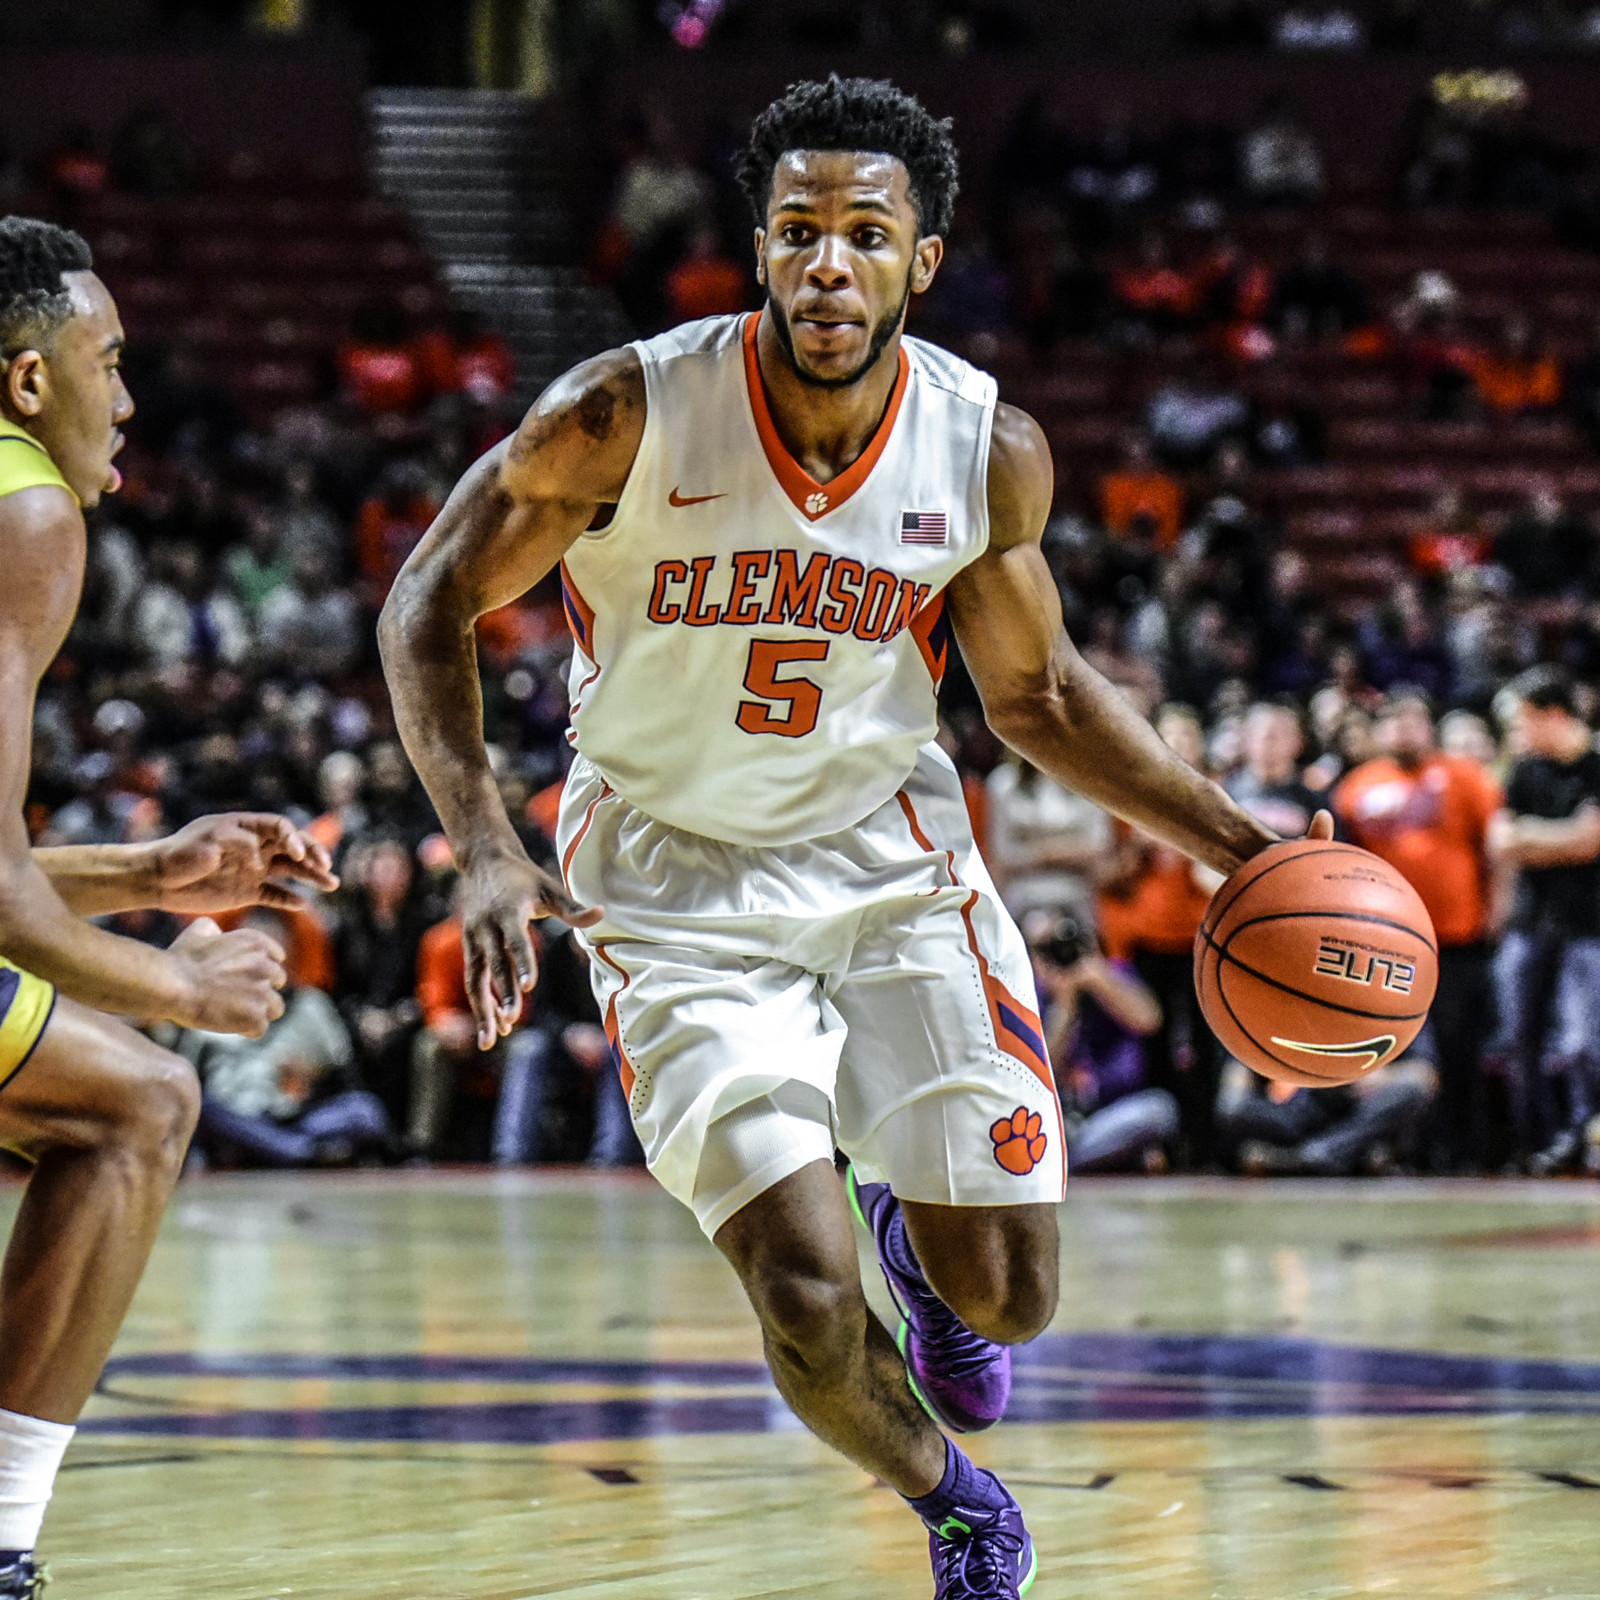 Tigers Come Up Short in Raleigh, 77-74